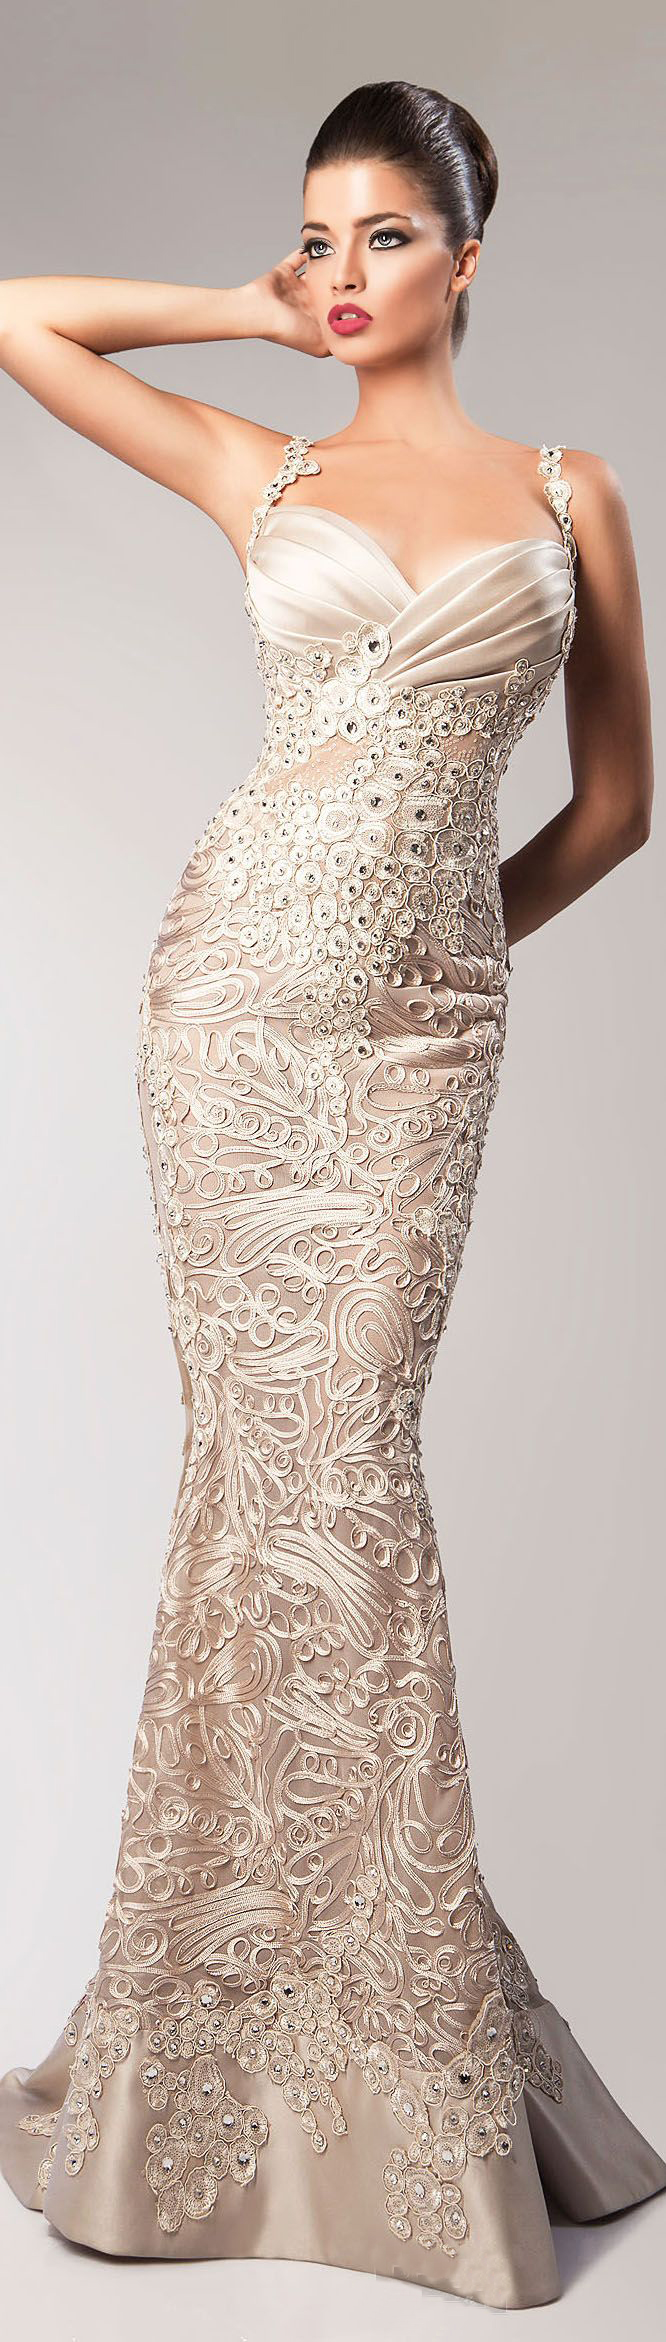 Evening #Dresses & #Gowns | Gowns | Pinterest | Gowns, Occasion wear ...